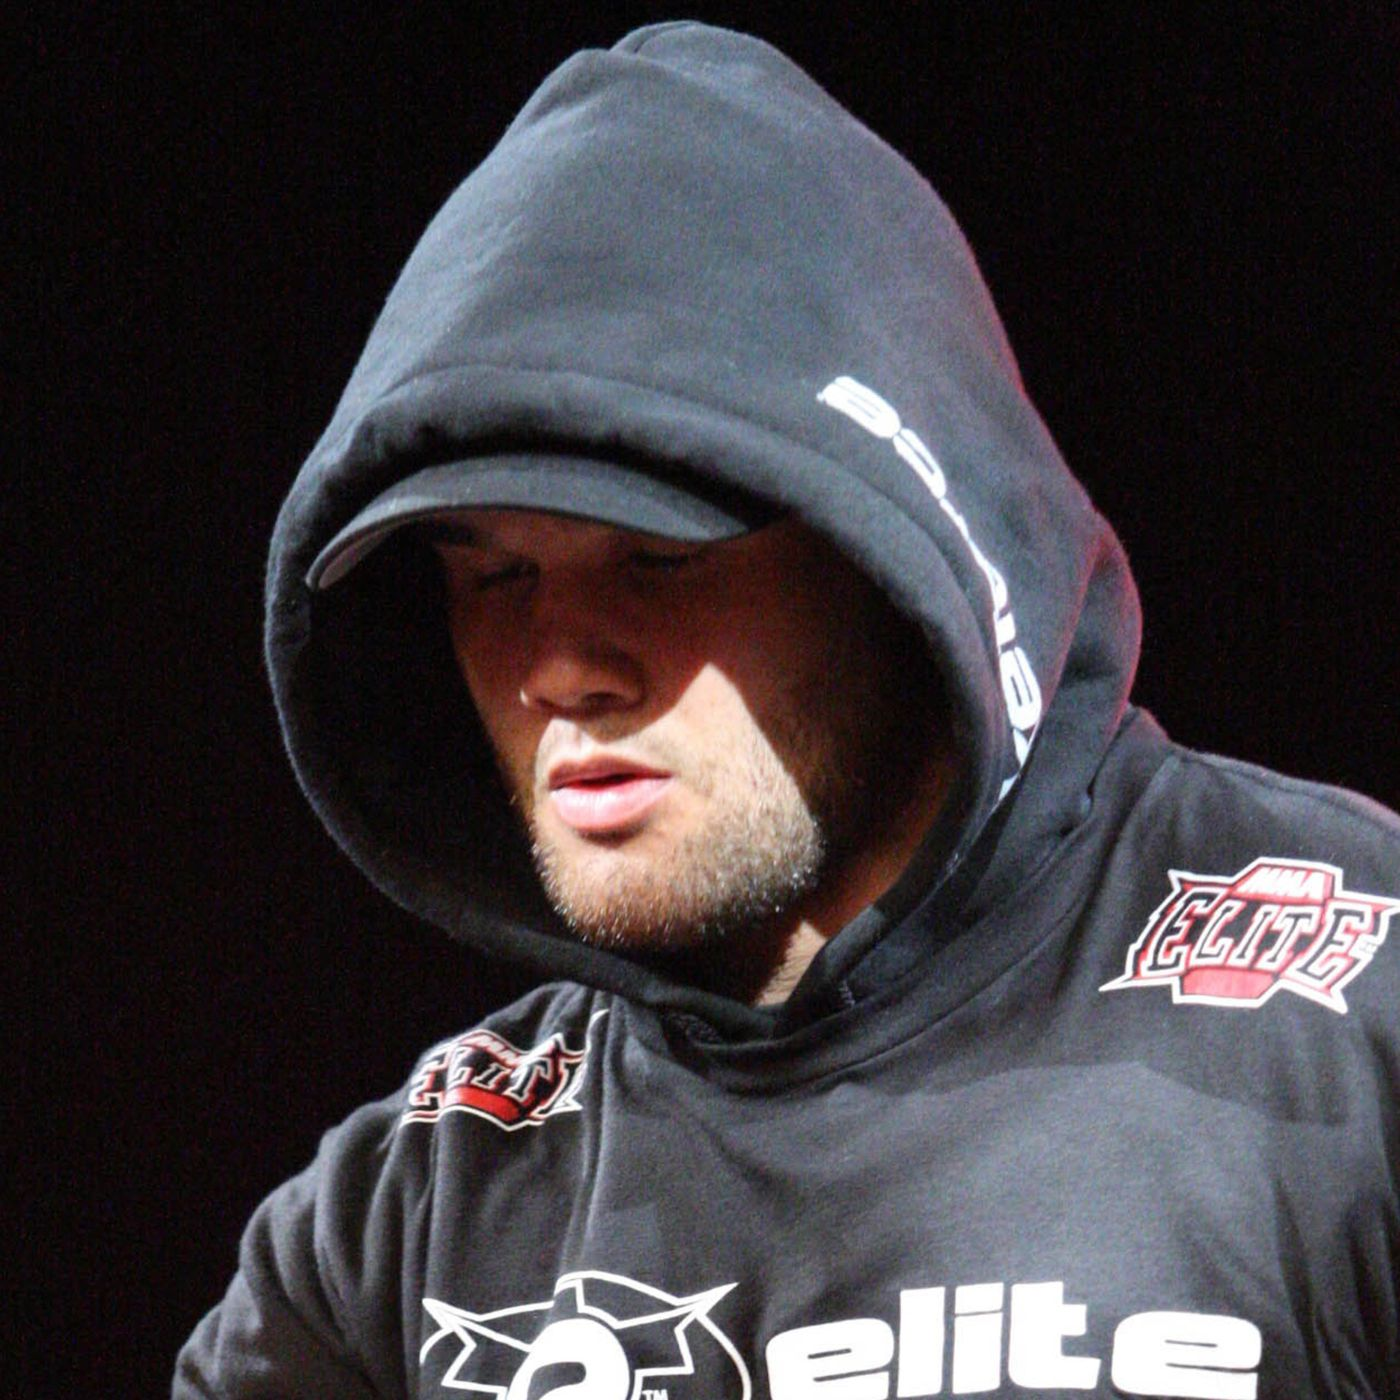 Betting odds ufc 171 xmas number one 2021 betting